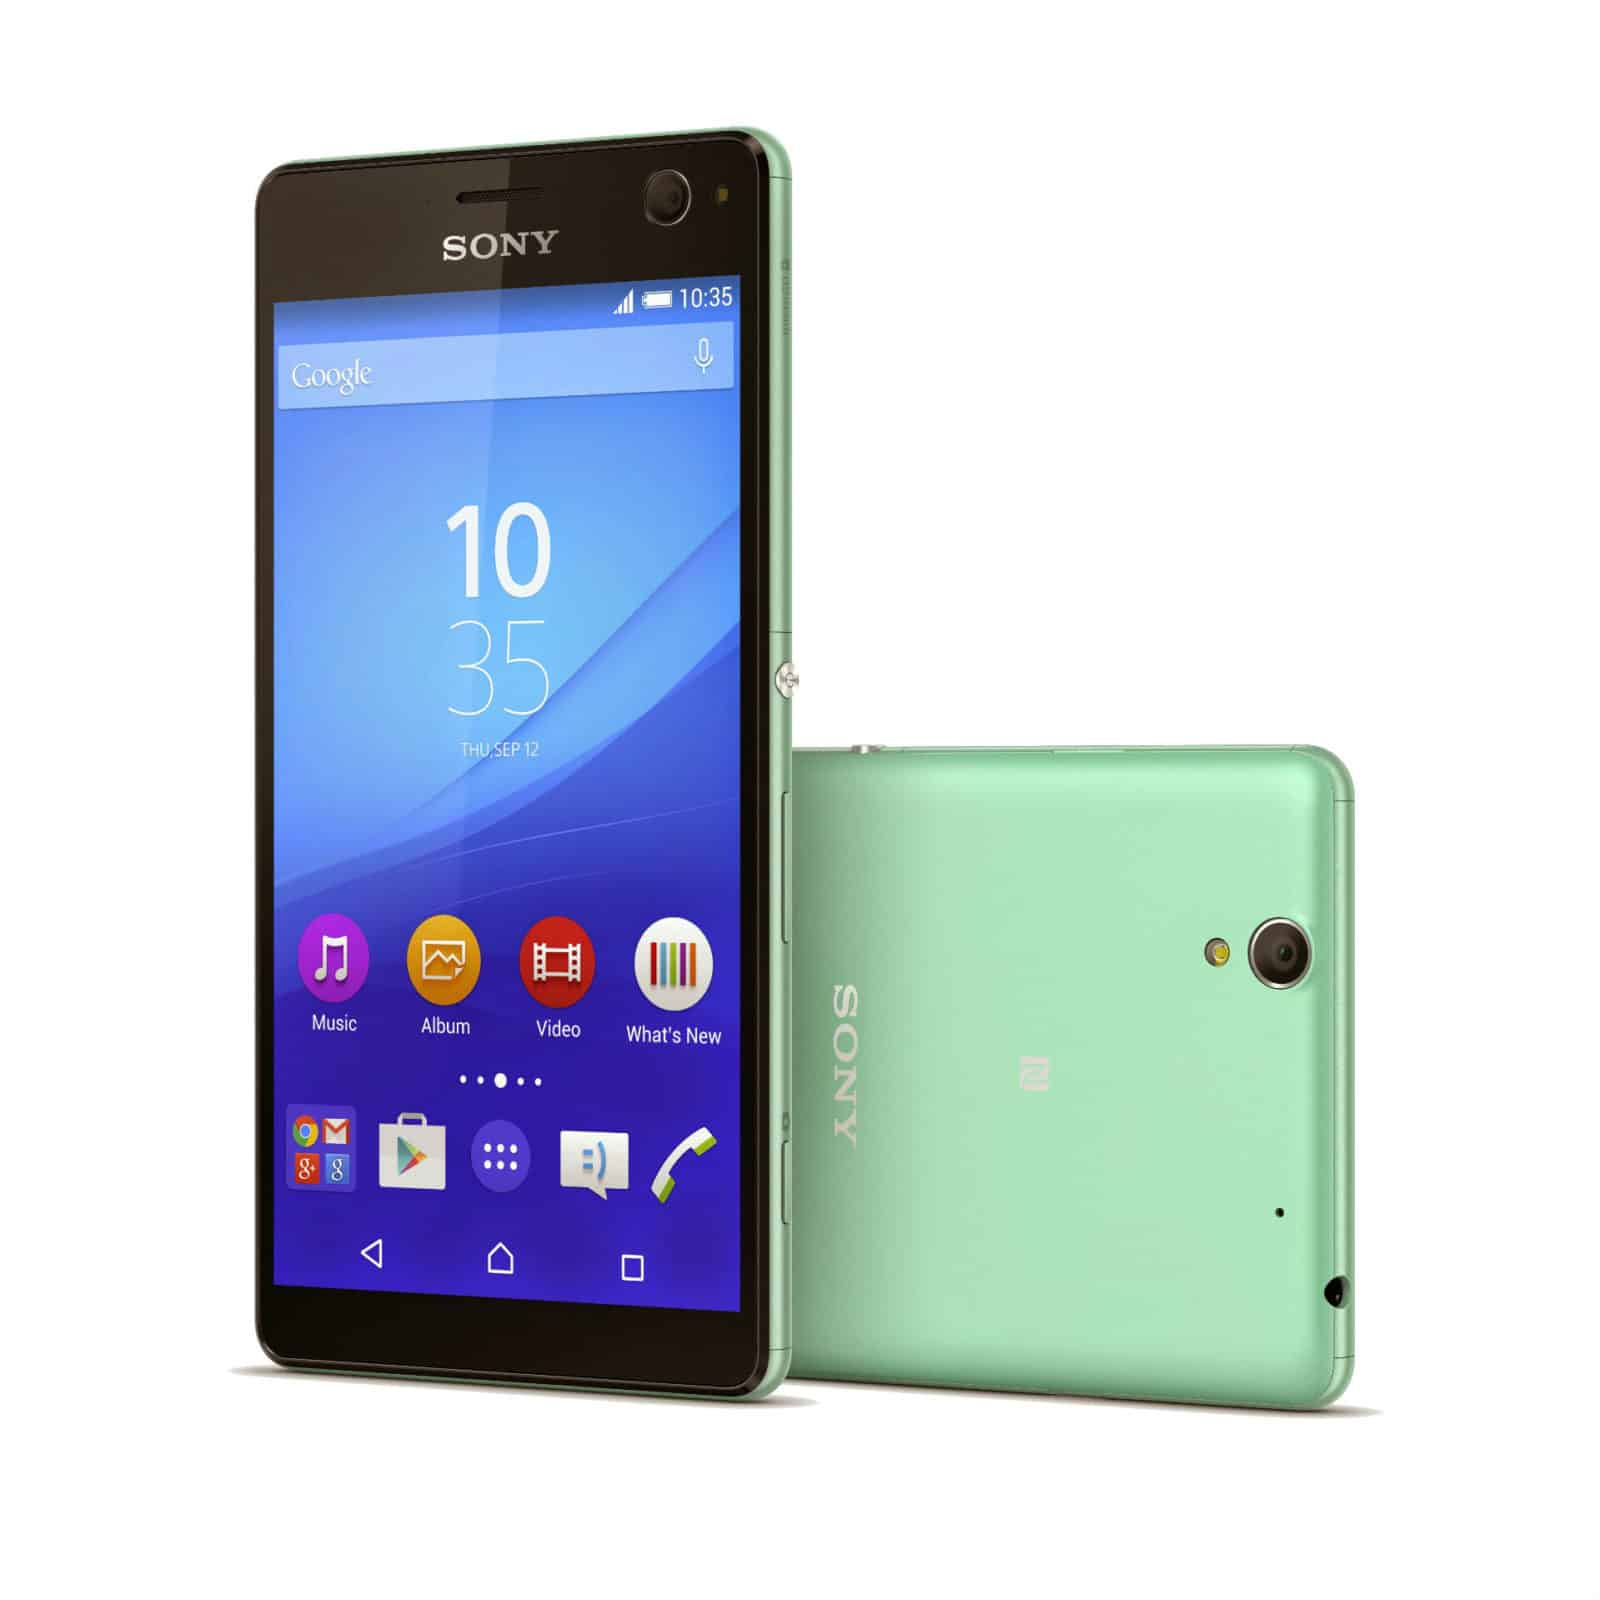 Sony-Xperia-C4-press-images_10